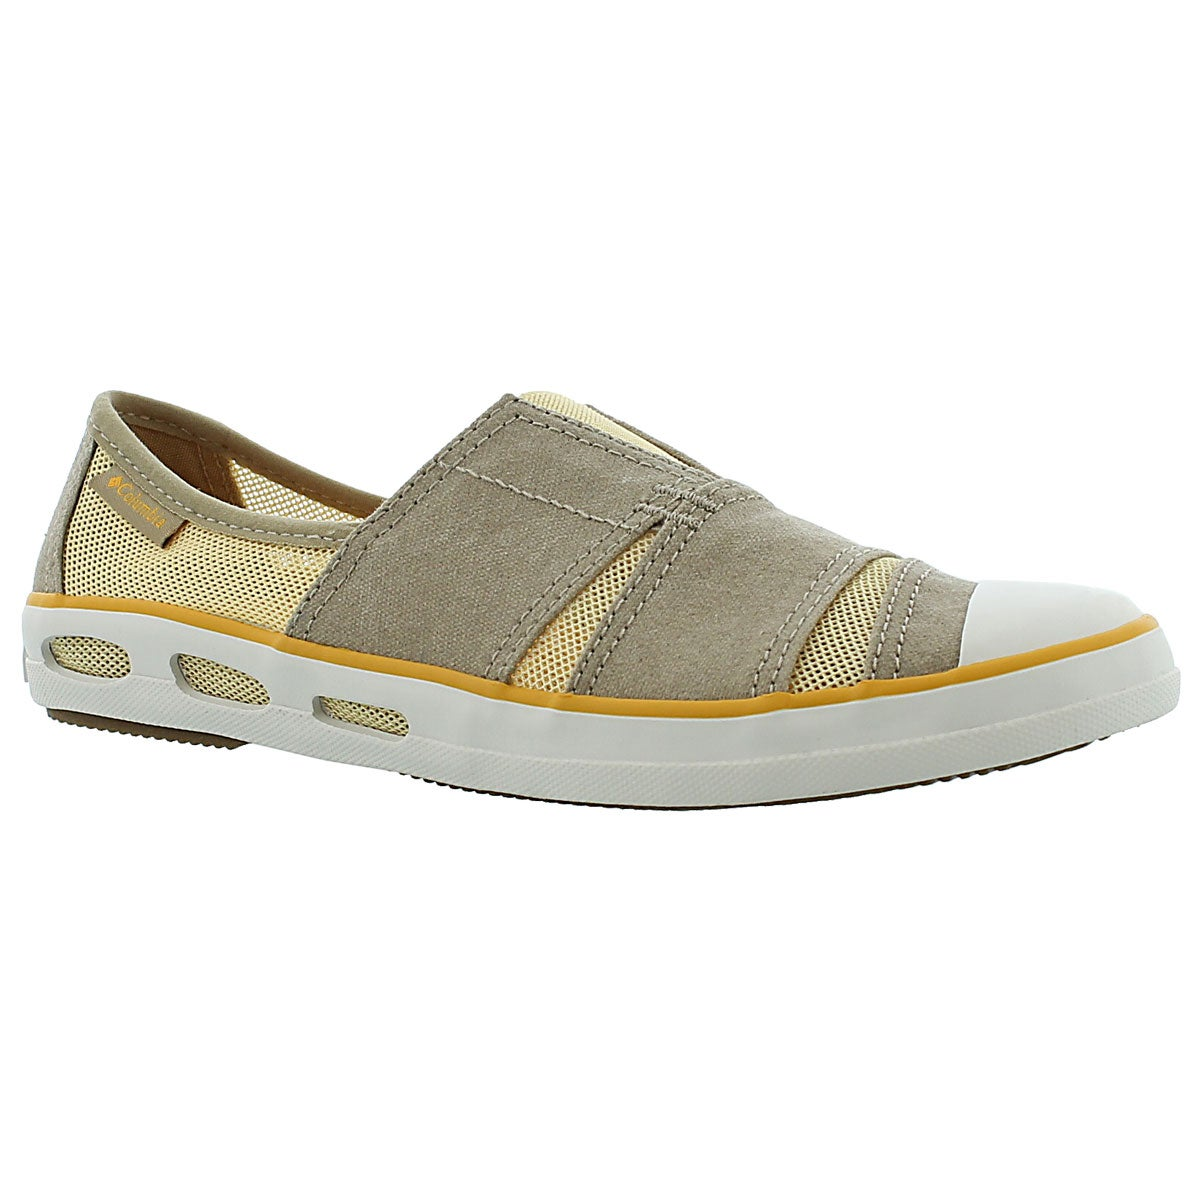 Lds Vulc N Vent Slip tan slip on